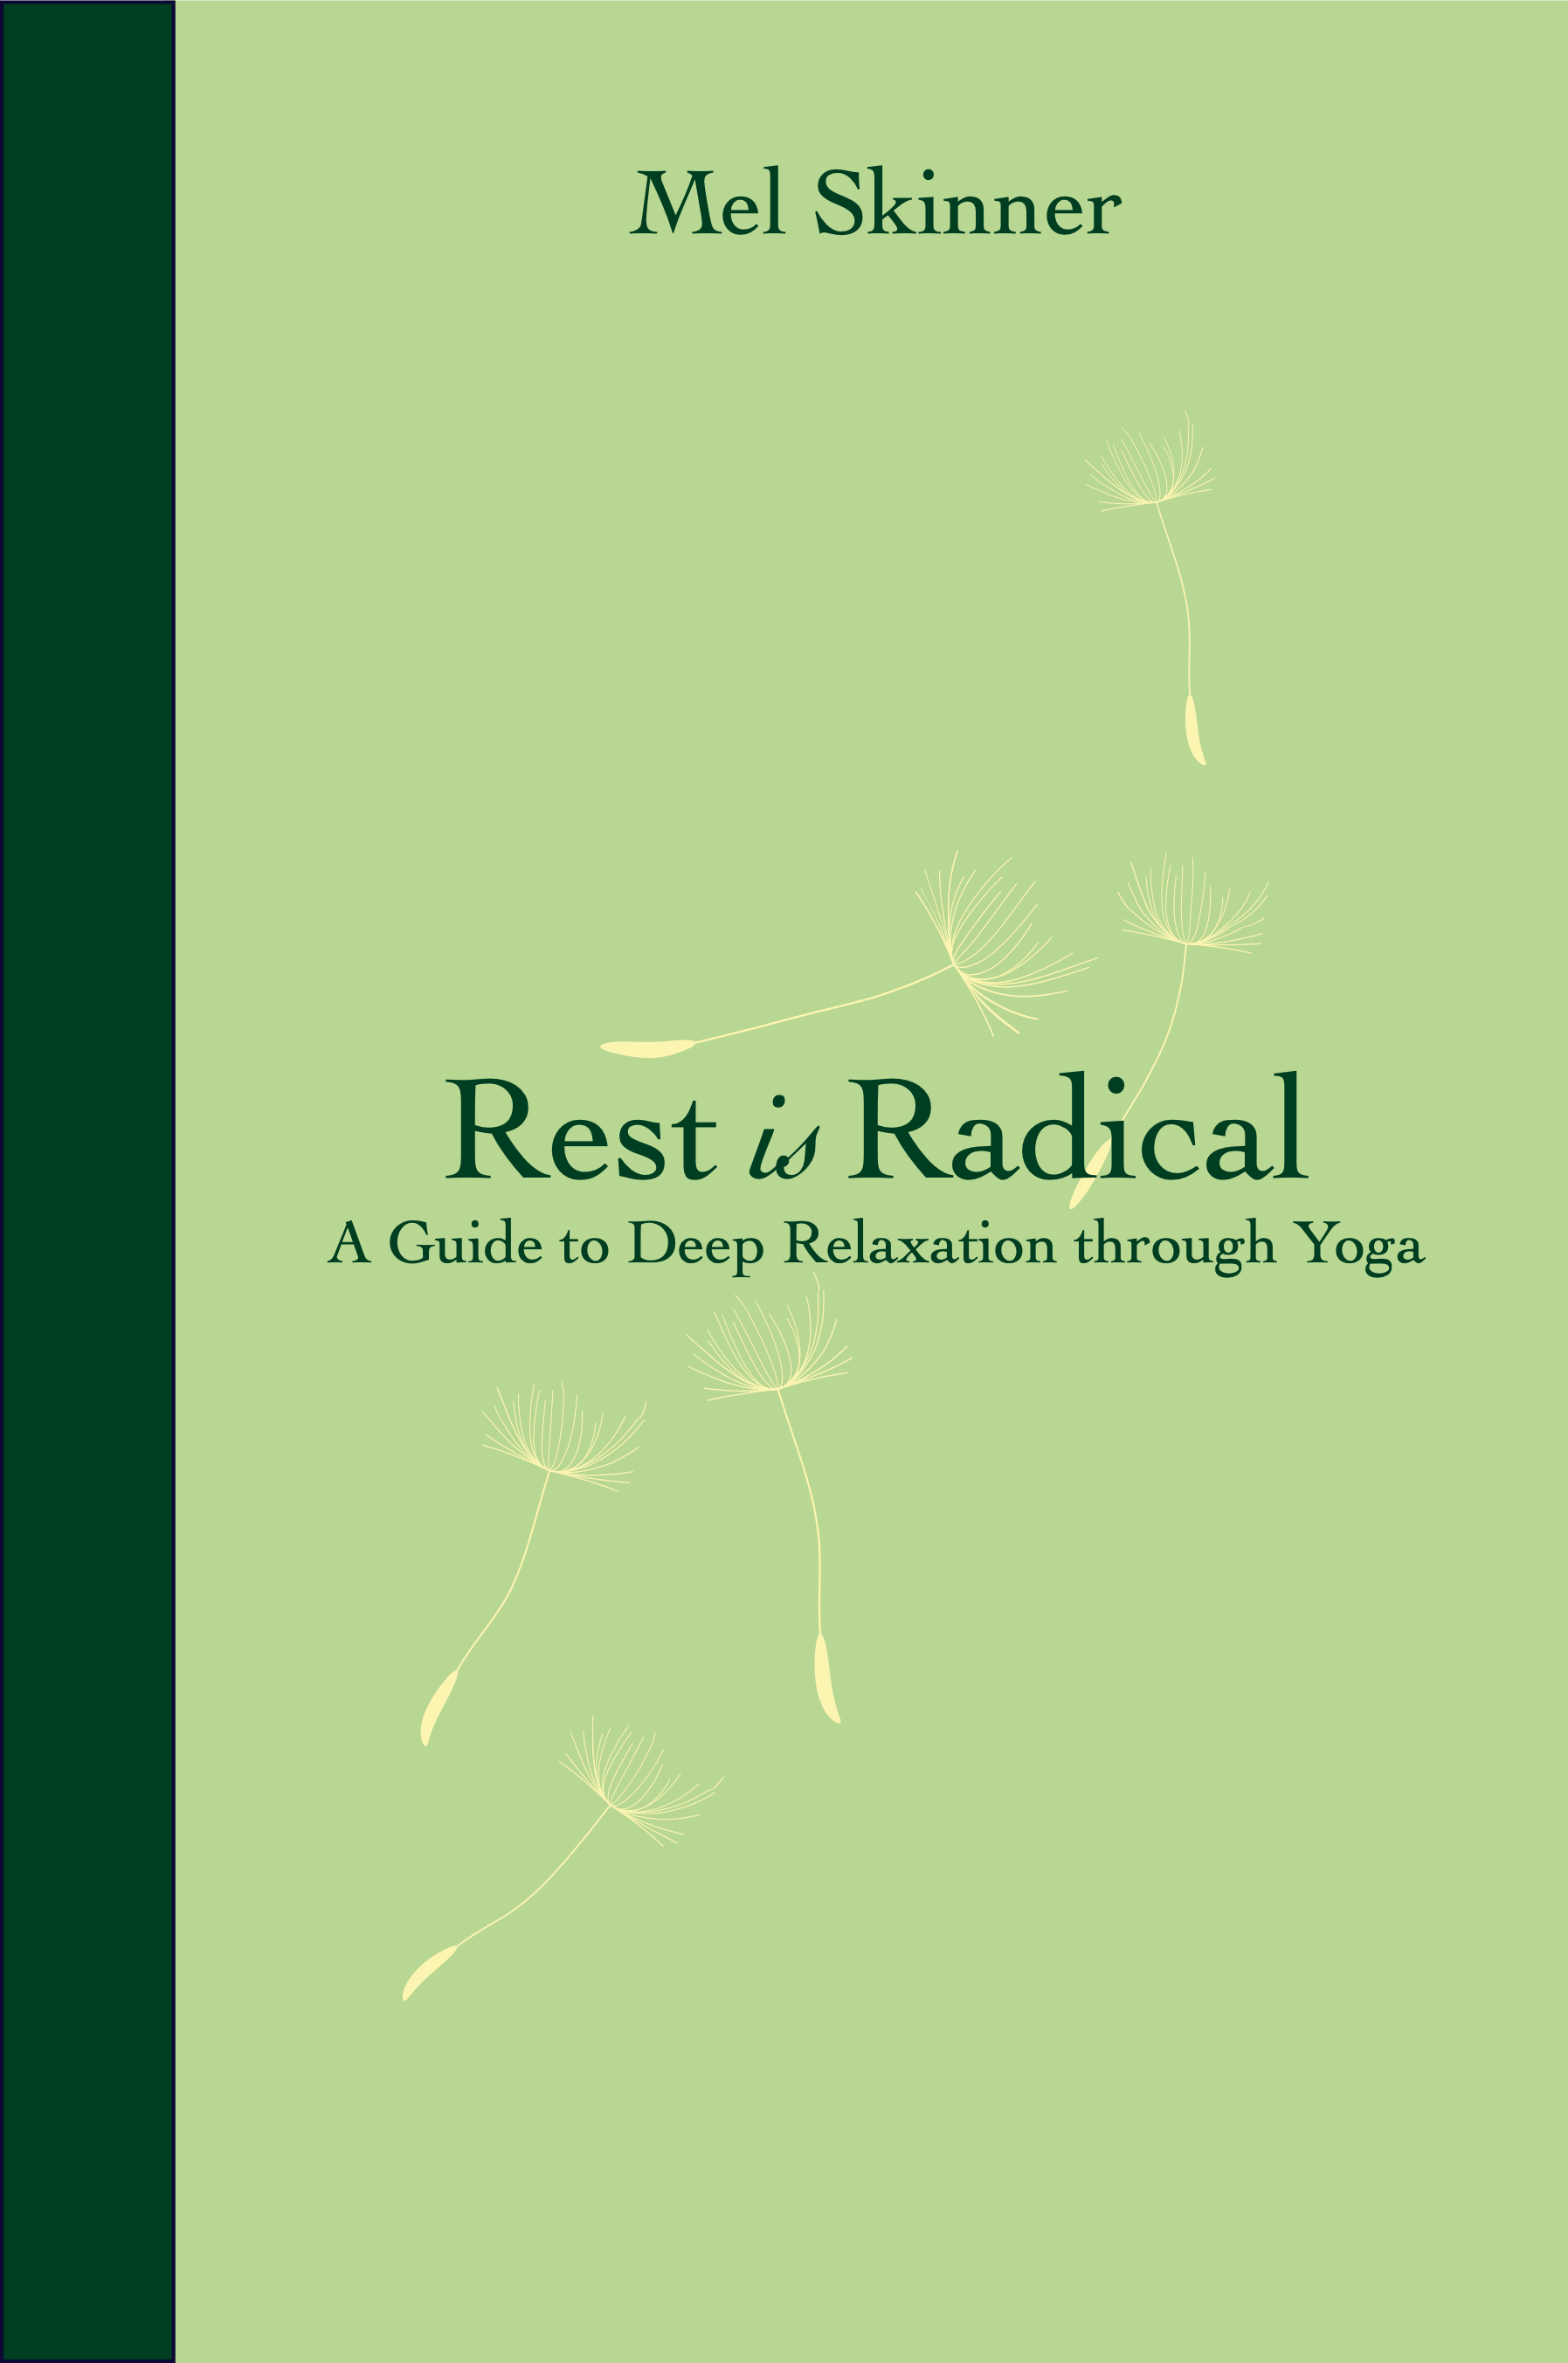 Rest is Radical: A guide to deep relaxation through yoga